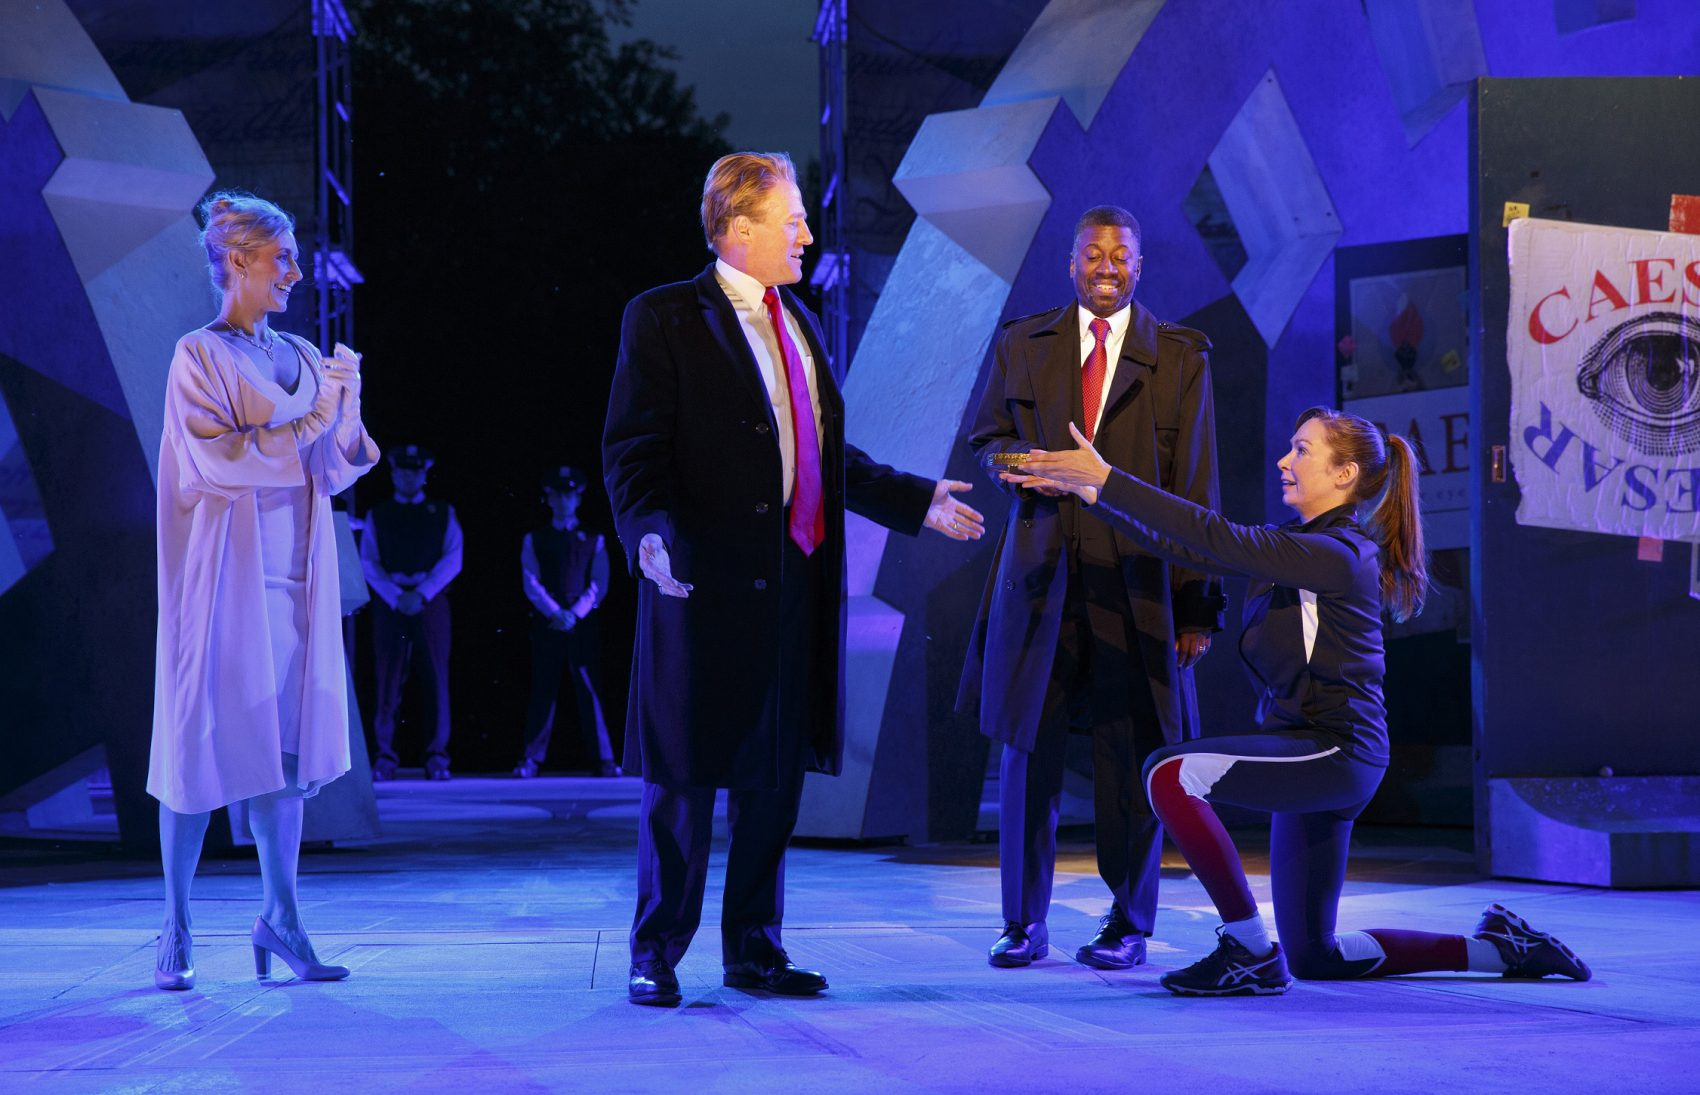 "Tina Benko, left, portrays Melania Trump in the role of Caesar's wife, Calpurnia, and Gregg Henry, center left, portrays President Trump in the role of Julius Caesar during a dress rehearsal in May of The Public Theater's production of ""Julius Caesar"" in New York. (Joan Marcus/The Public Theater via AP)"